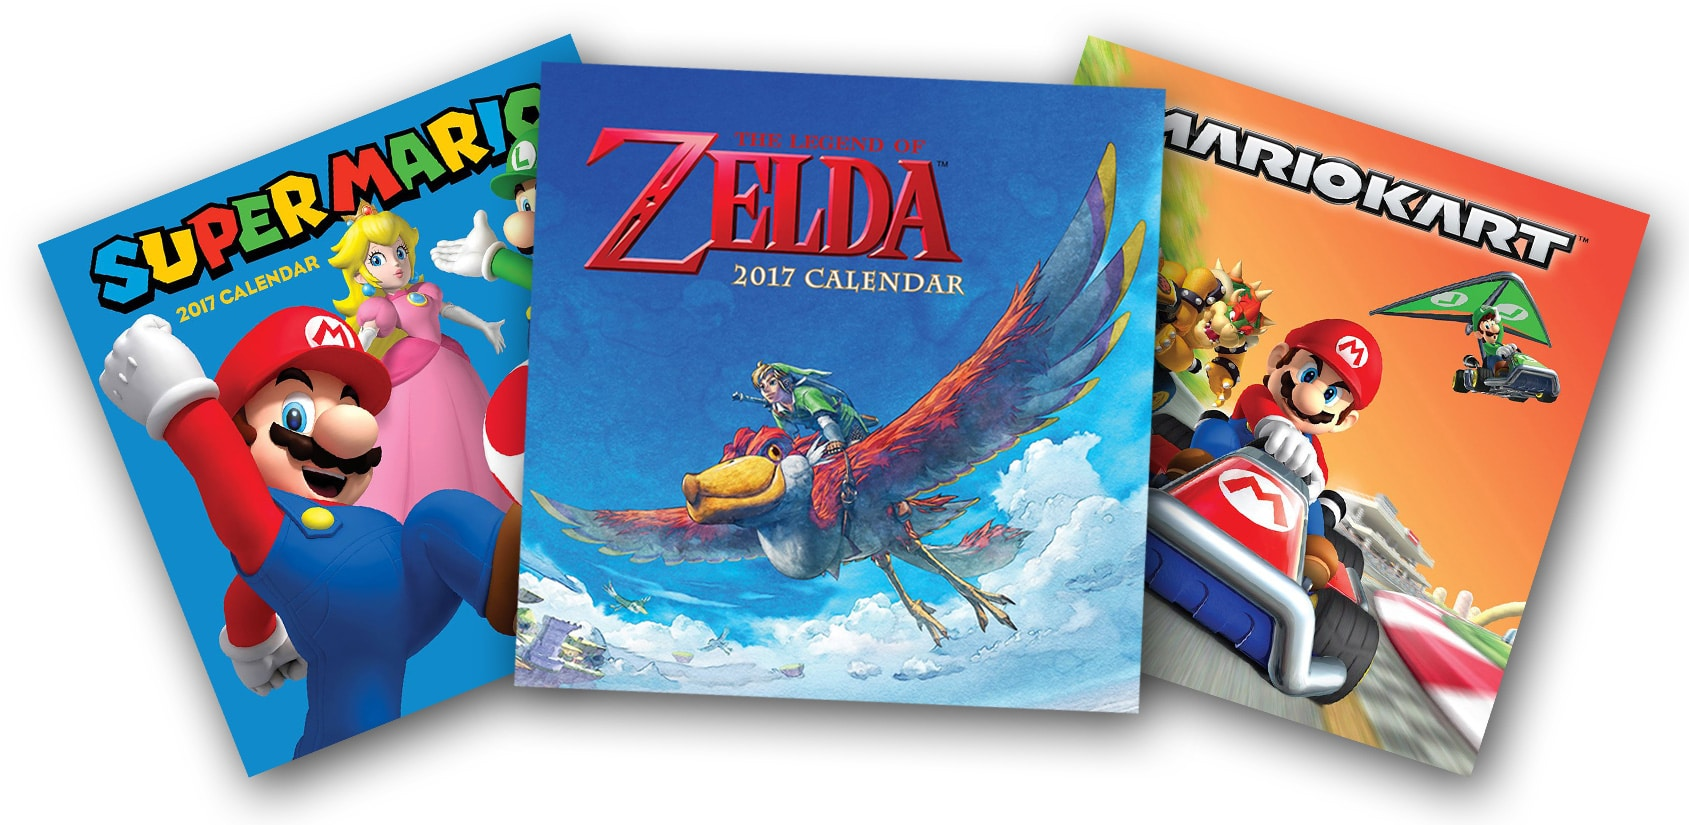 Nintendo: Super Mario Bros. und The Legend of Zelda als Kalender